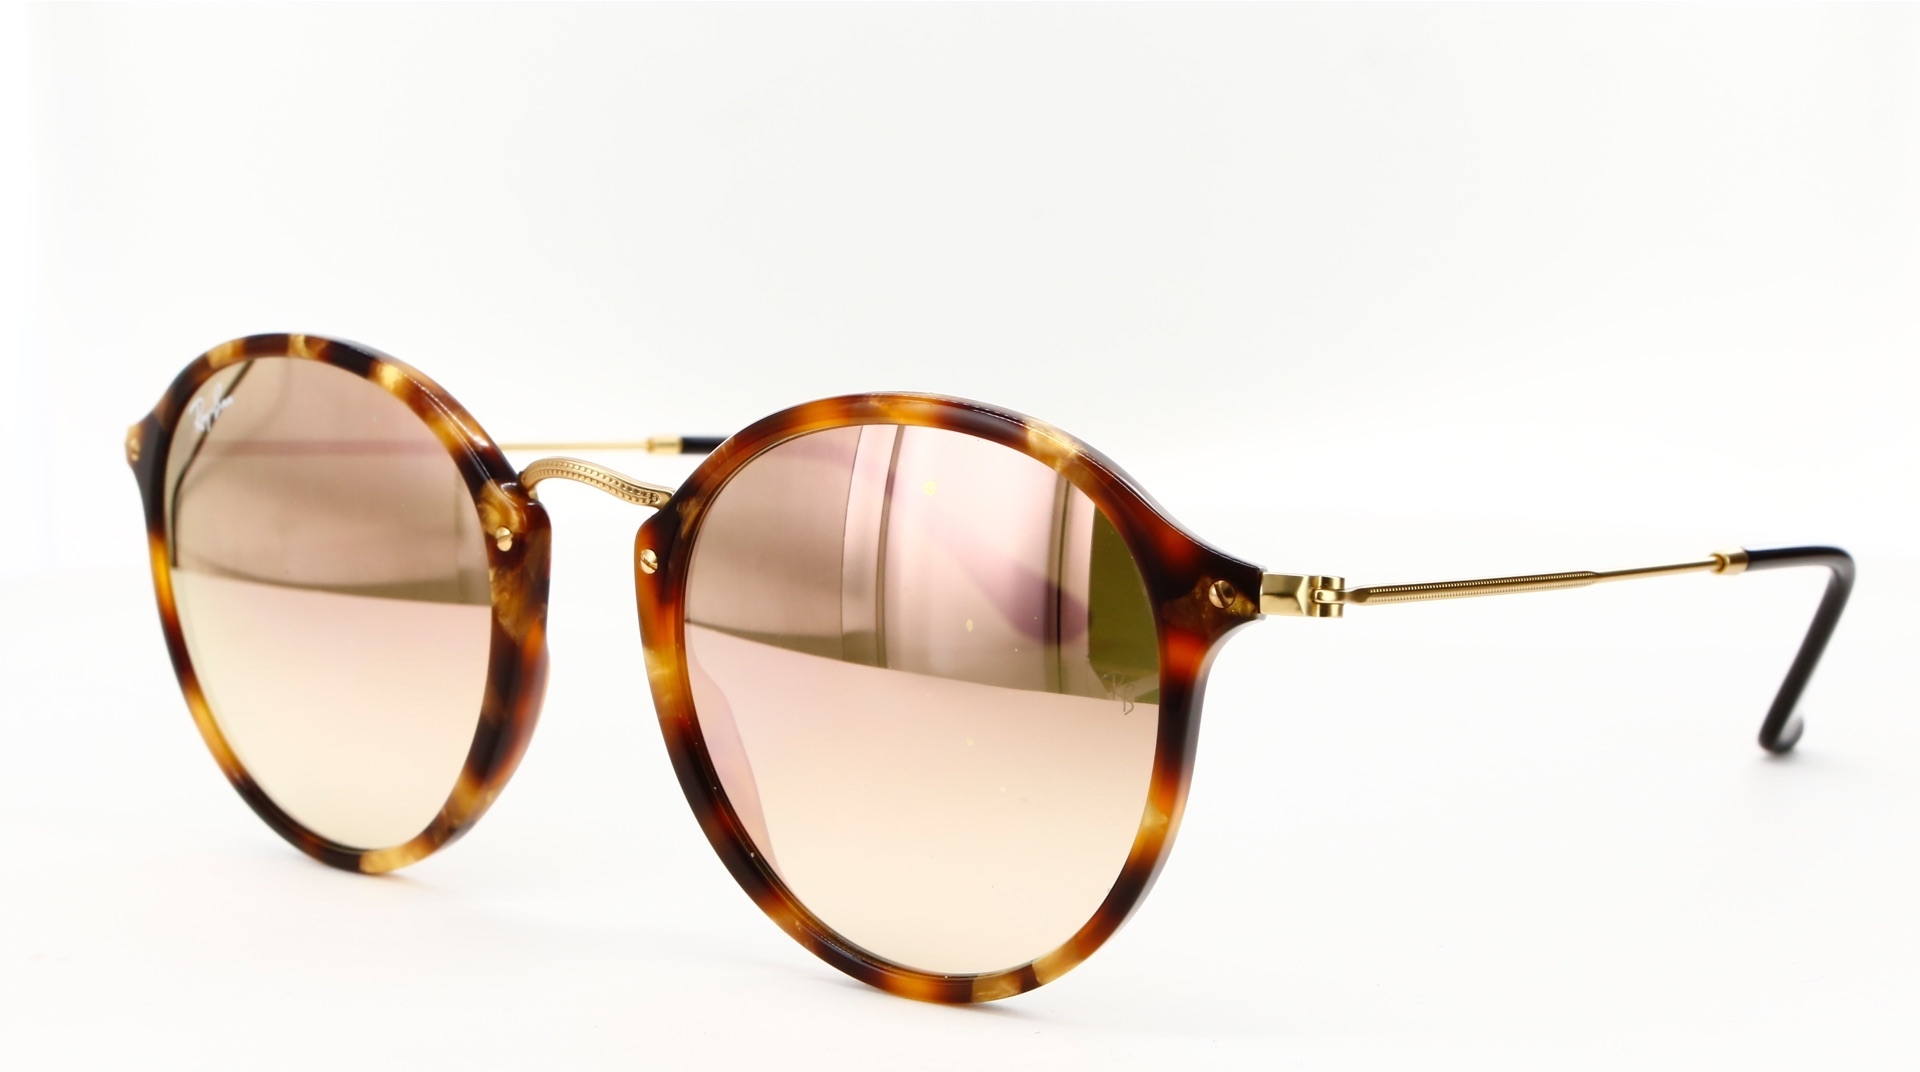 Ray-Ban - ref: 76840